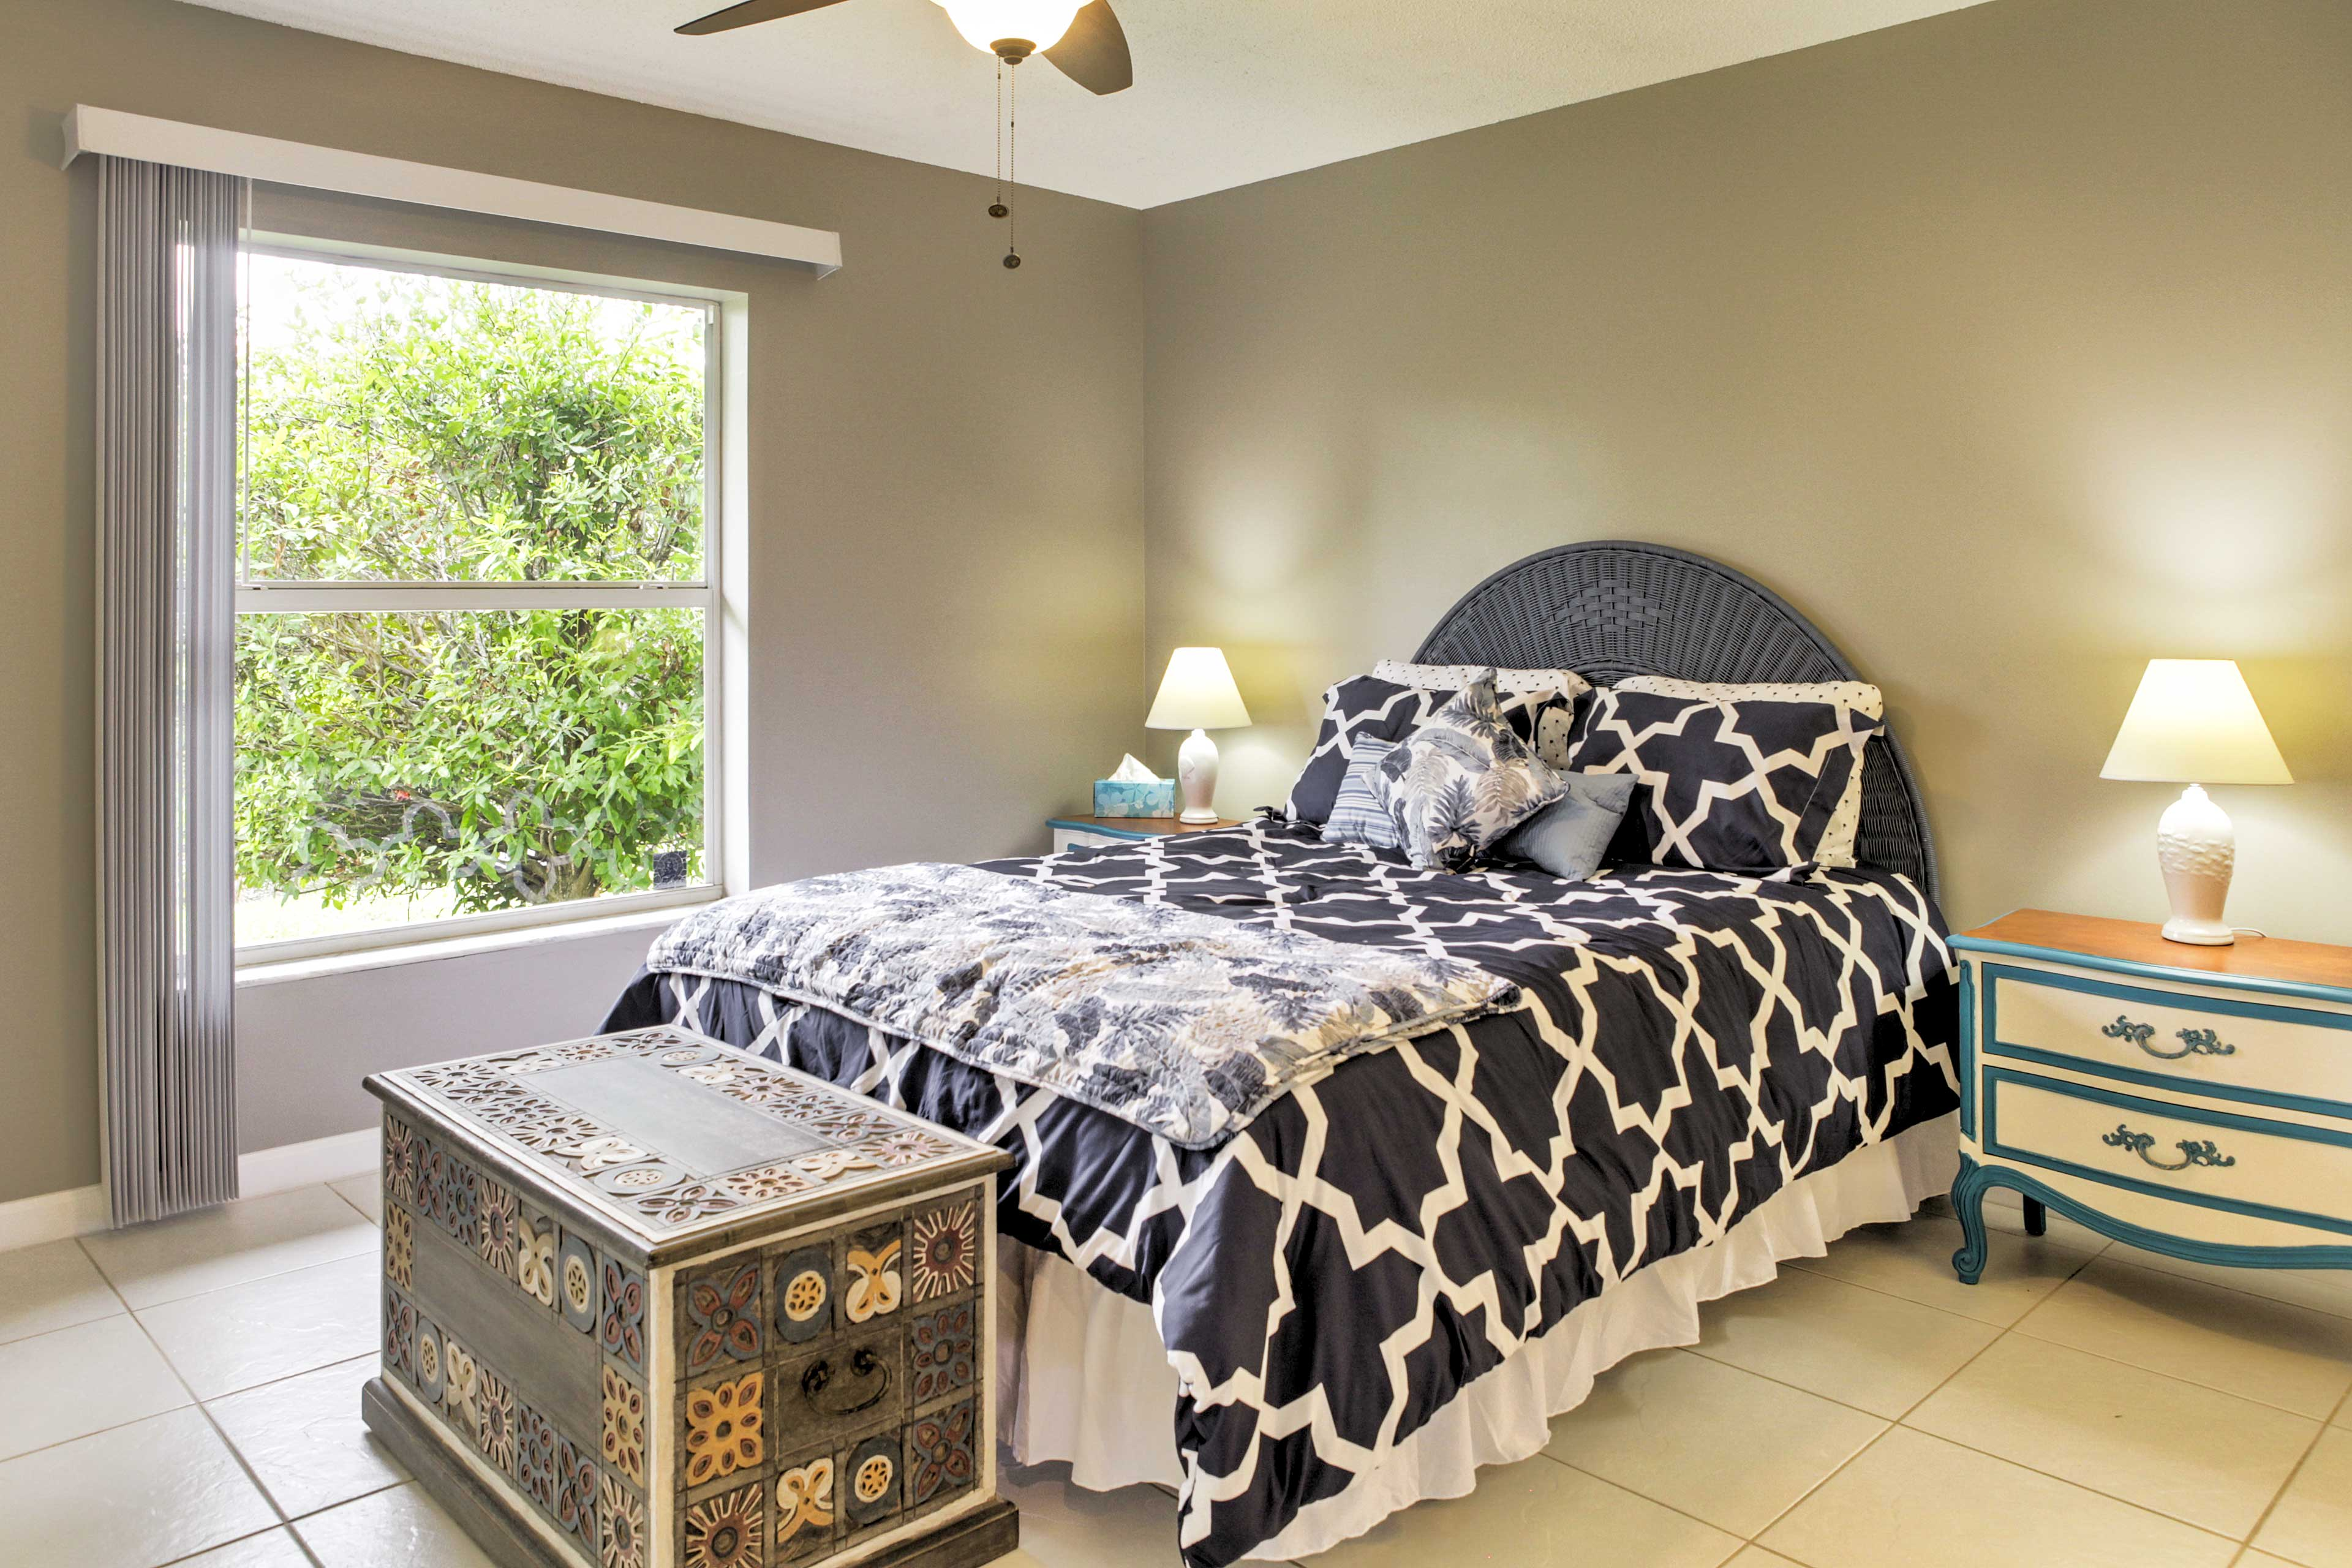 Fall asleep in the master bedroom's comfortable queen-sized bed.